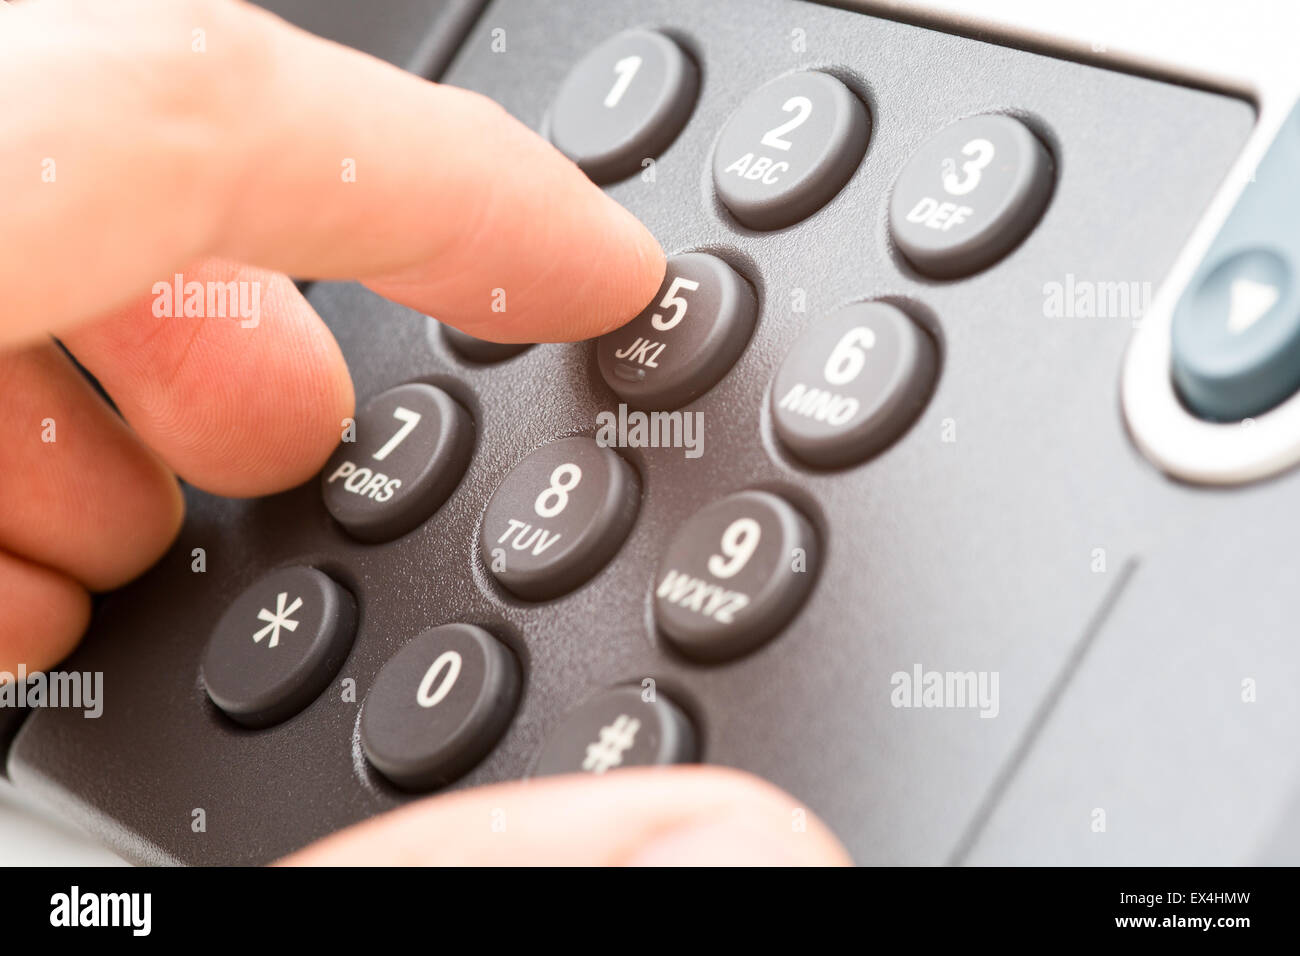 Business Office Telephone - Stock Image